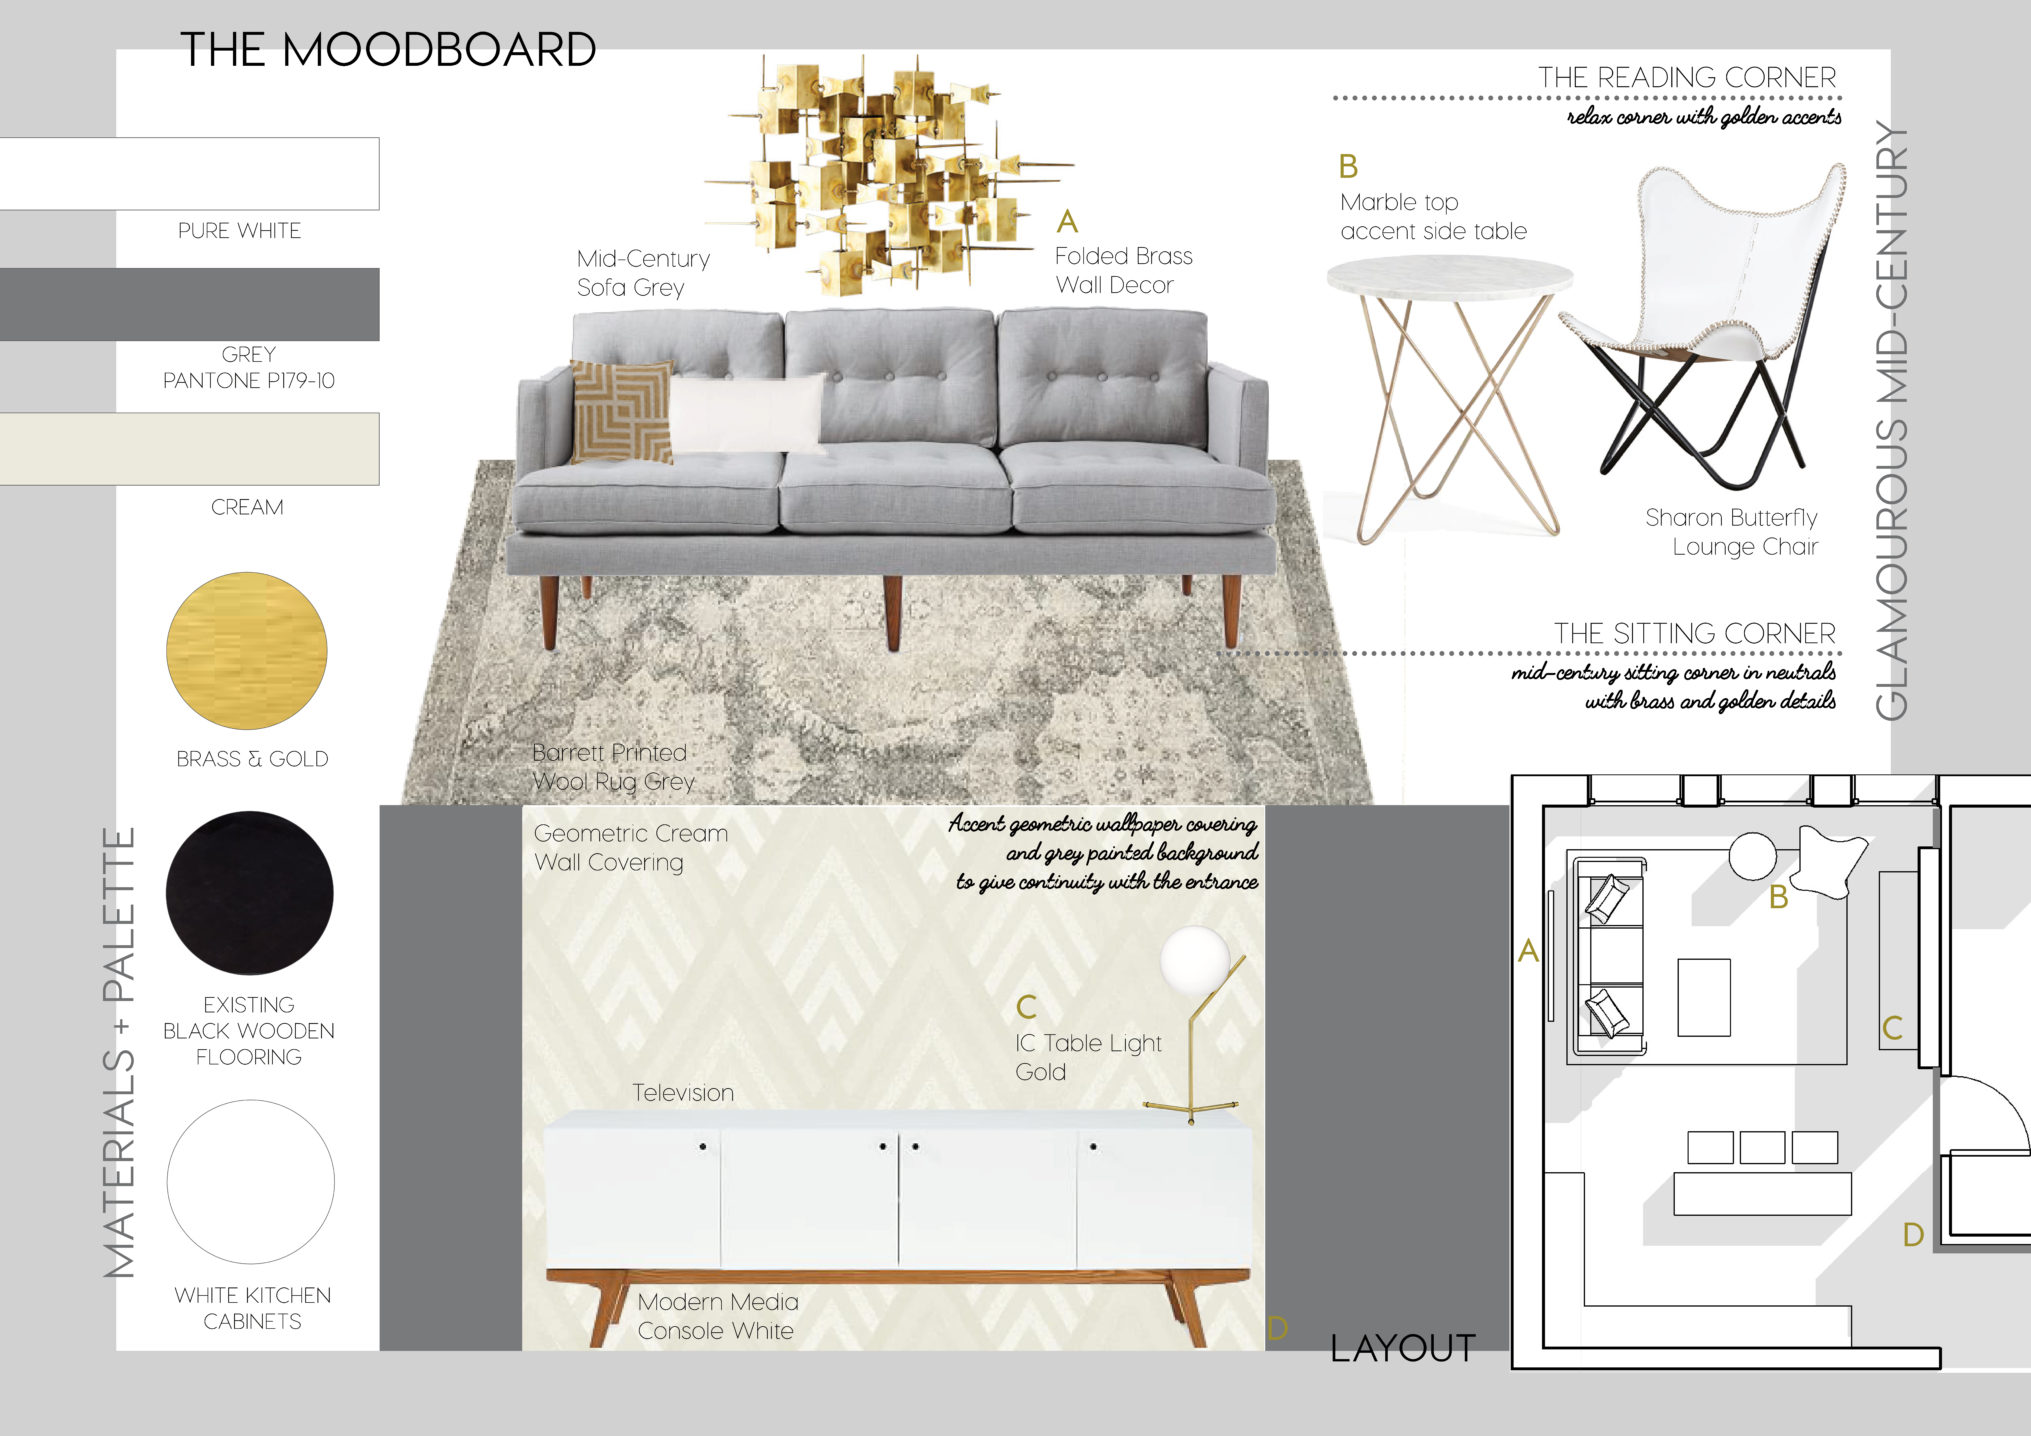 E Interior Design Services E Design Living Room With Mid Century Mood And Glam Touch